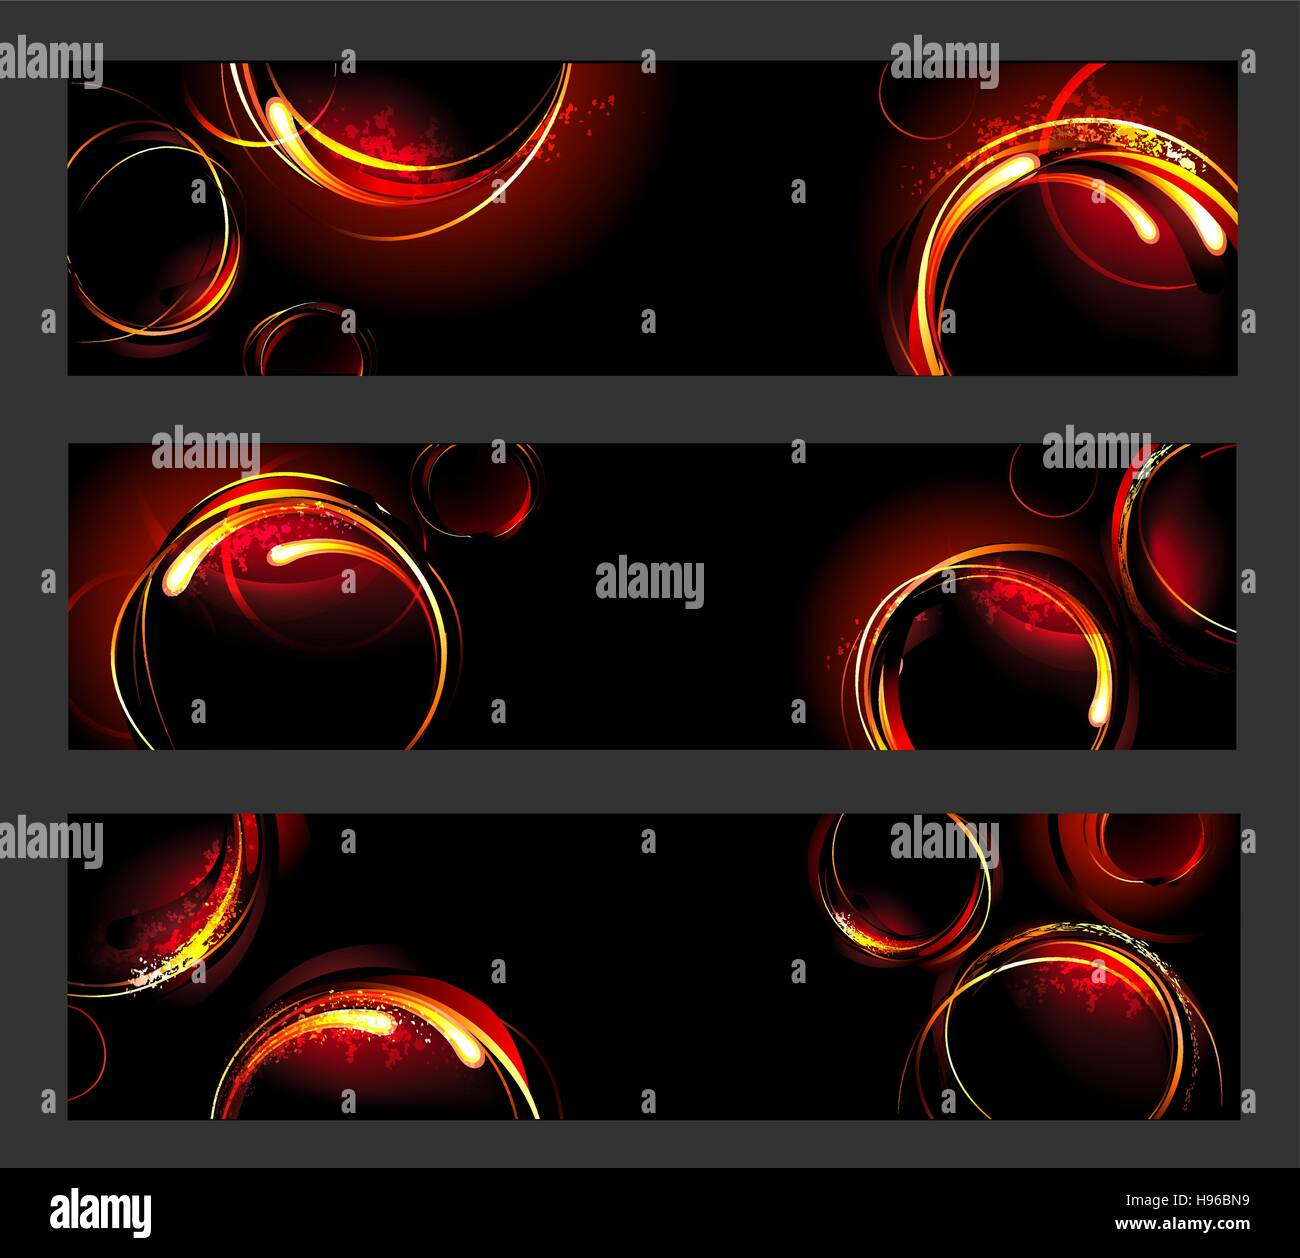 three banners with fiery , hot circles on a black background - Stock Image